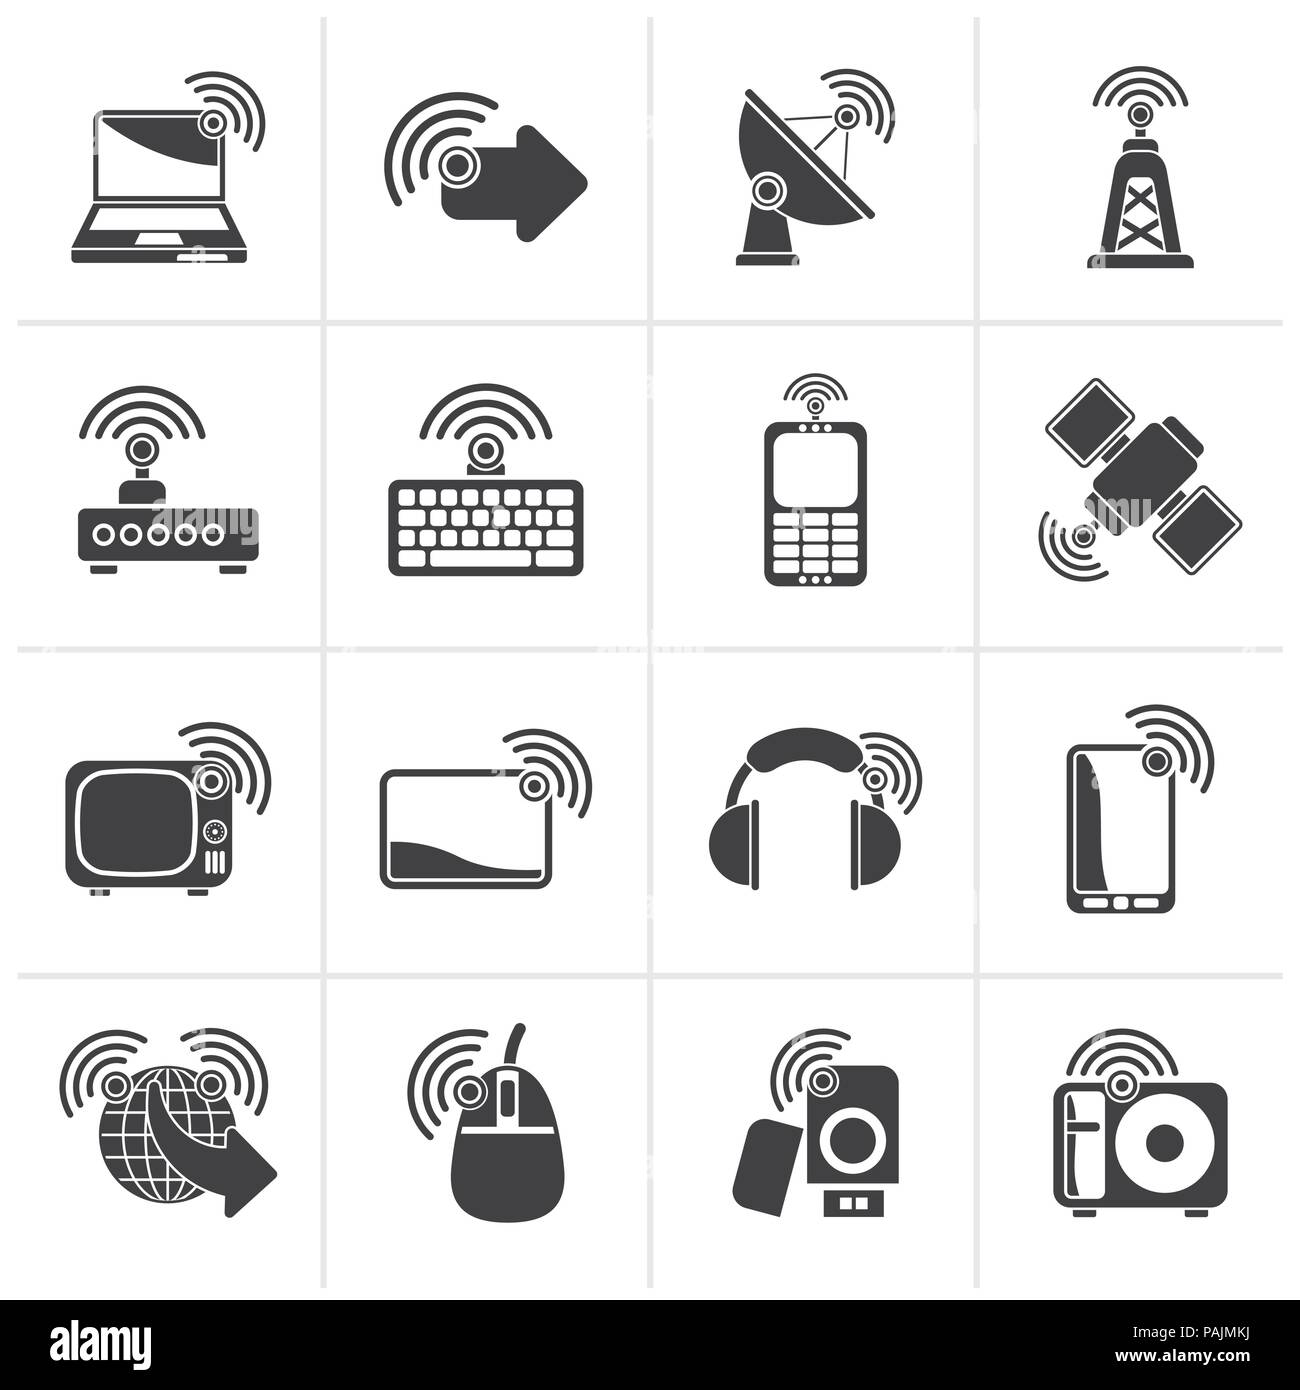 Black wireless and technology icons - vector icon set - Stock Image